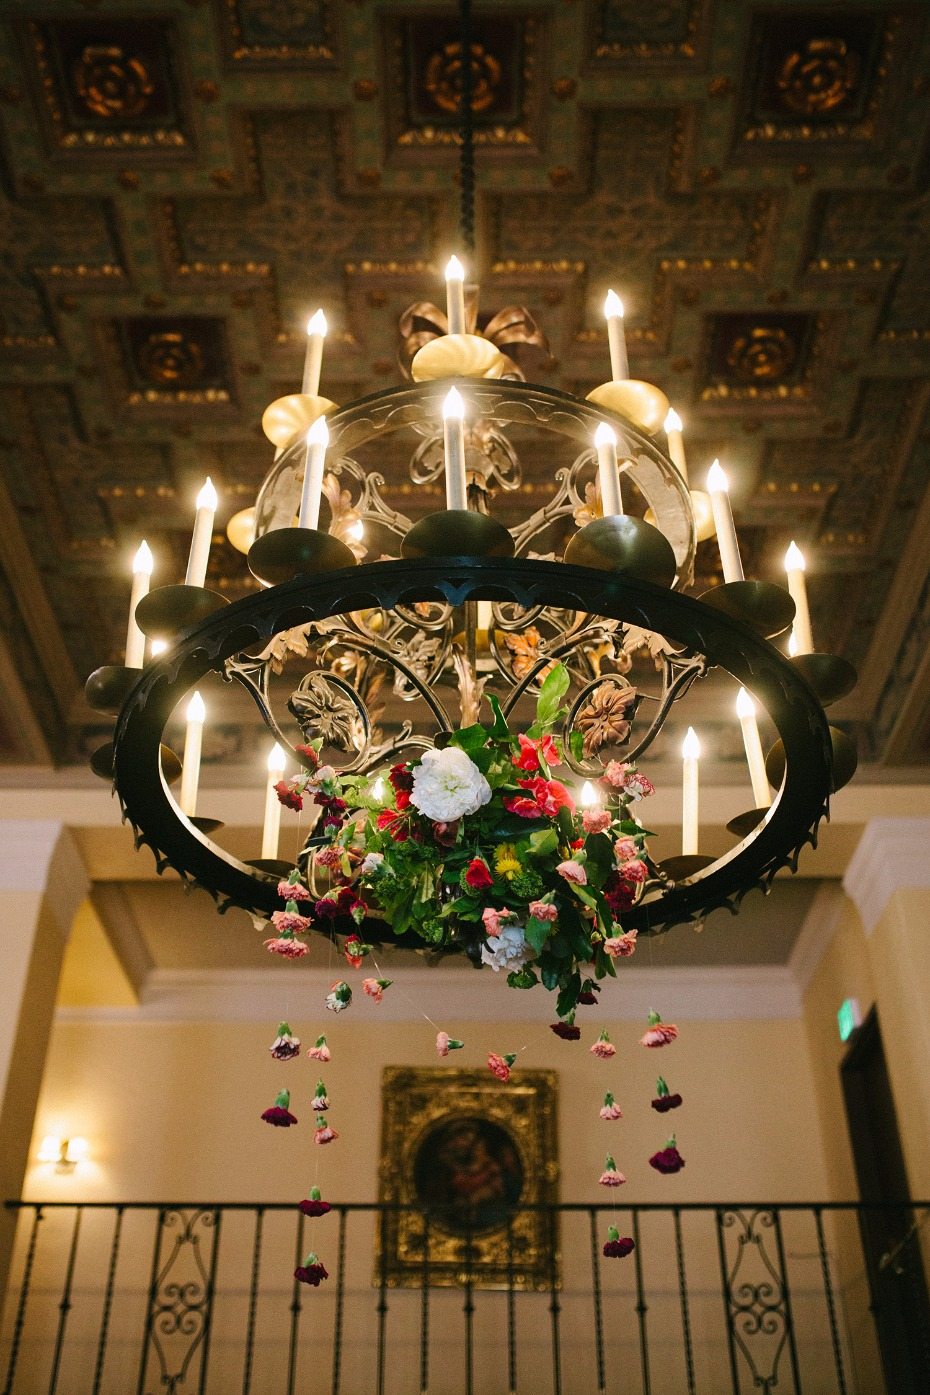 Decorate the chandeliers with flowers